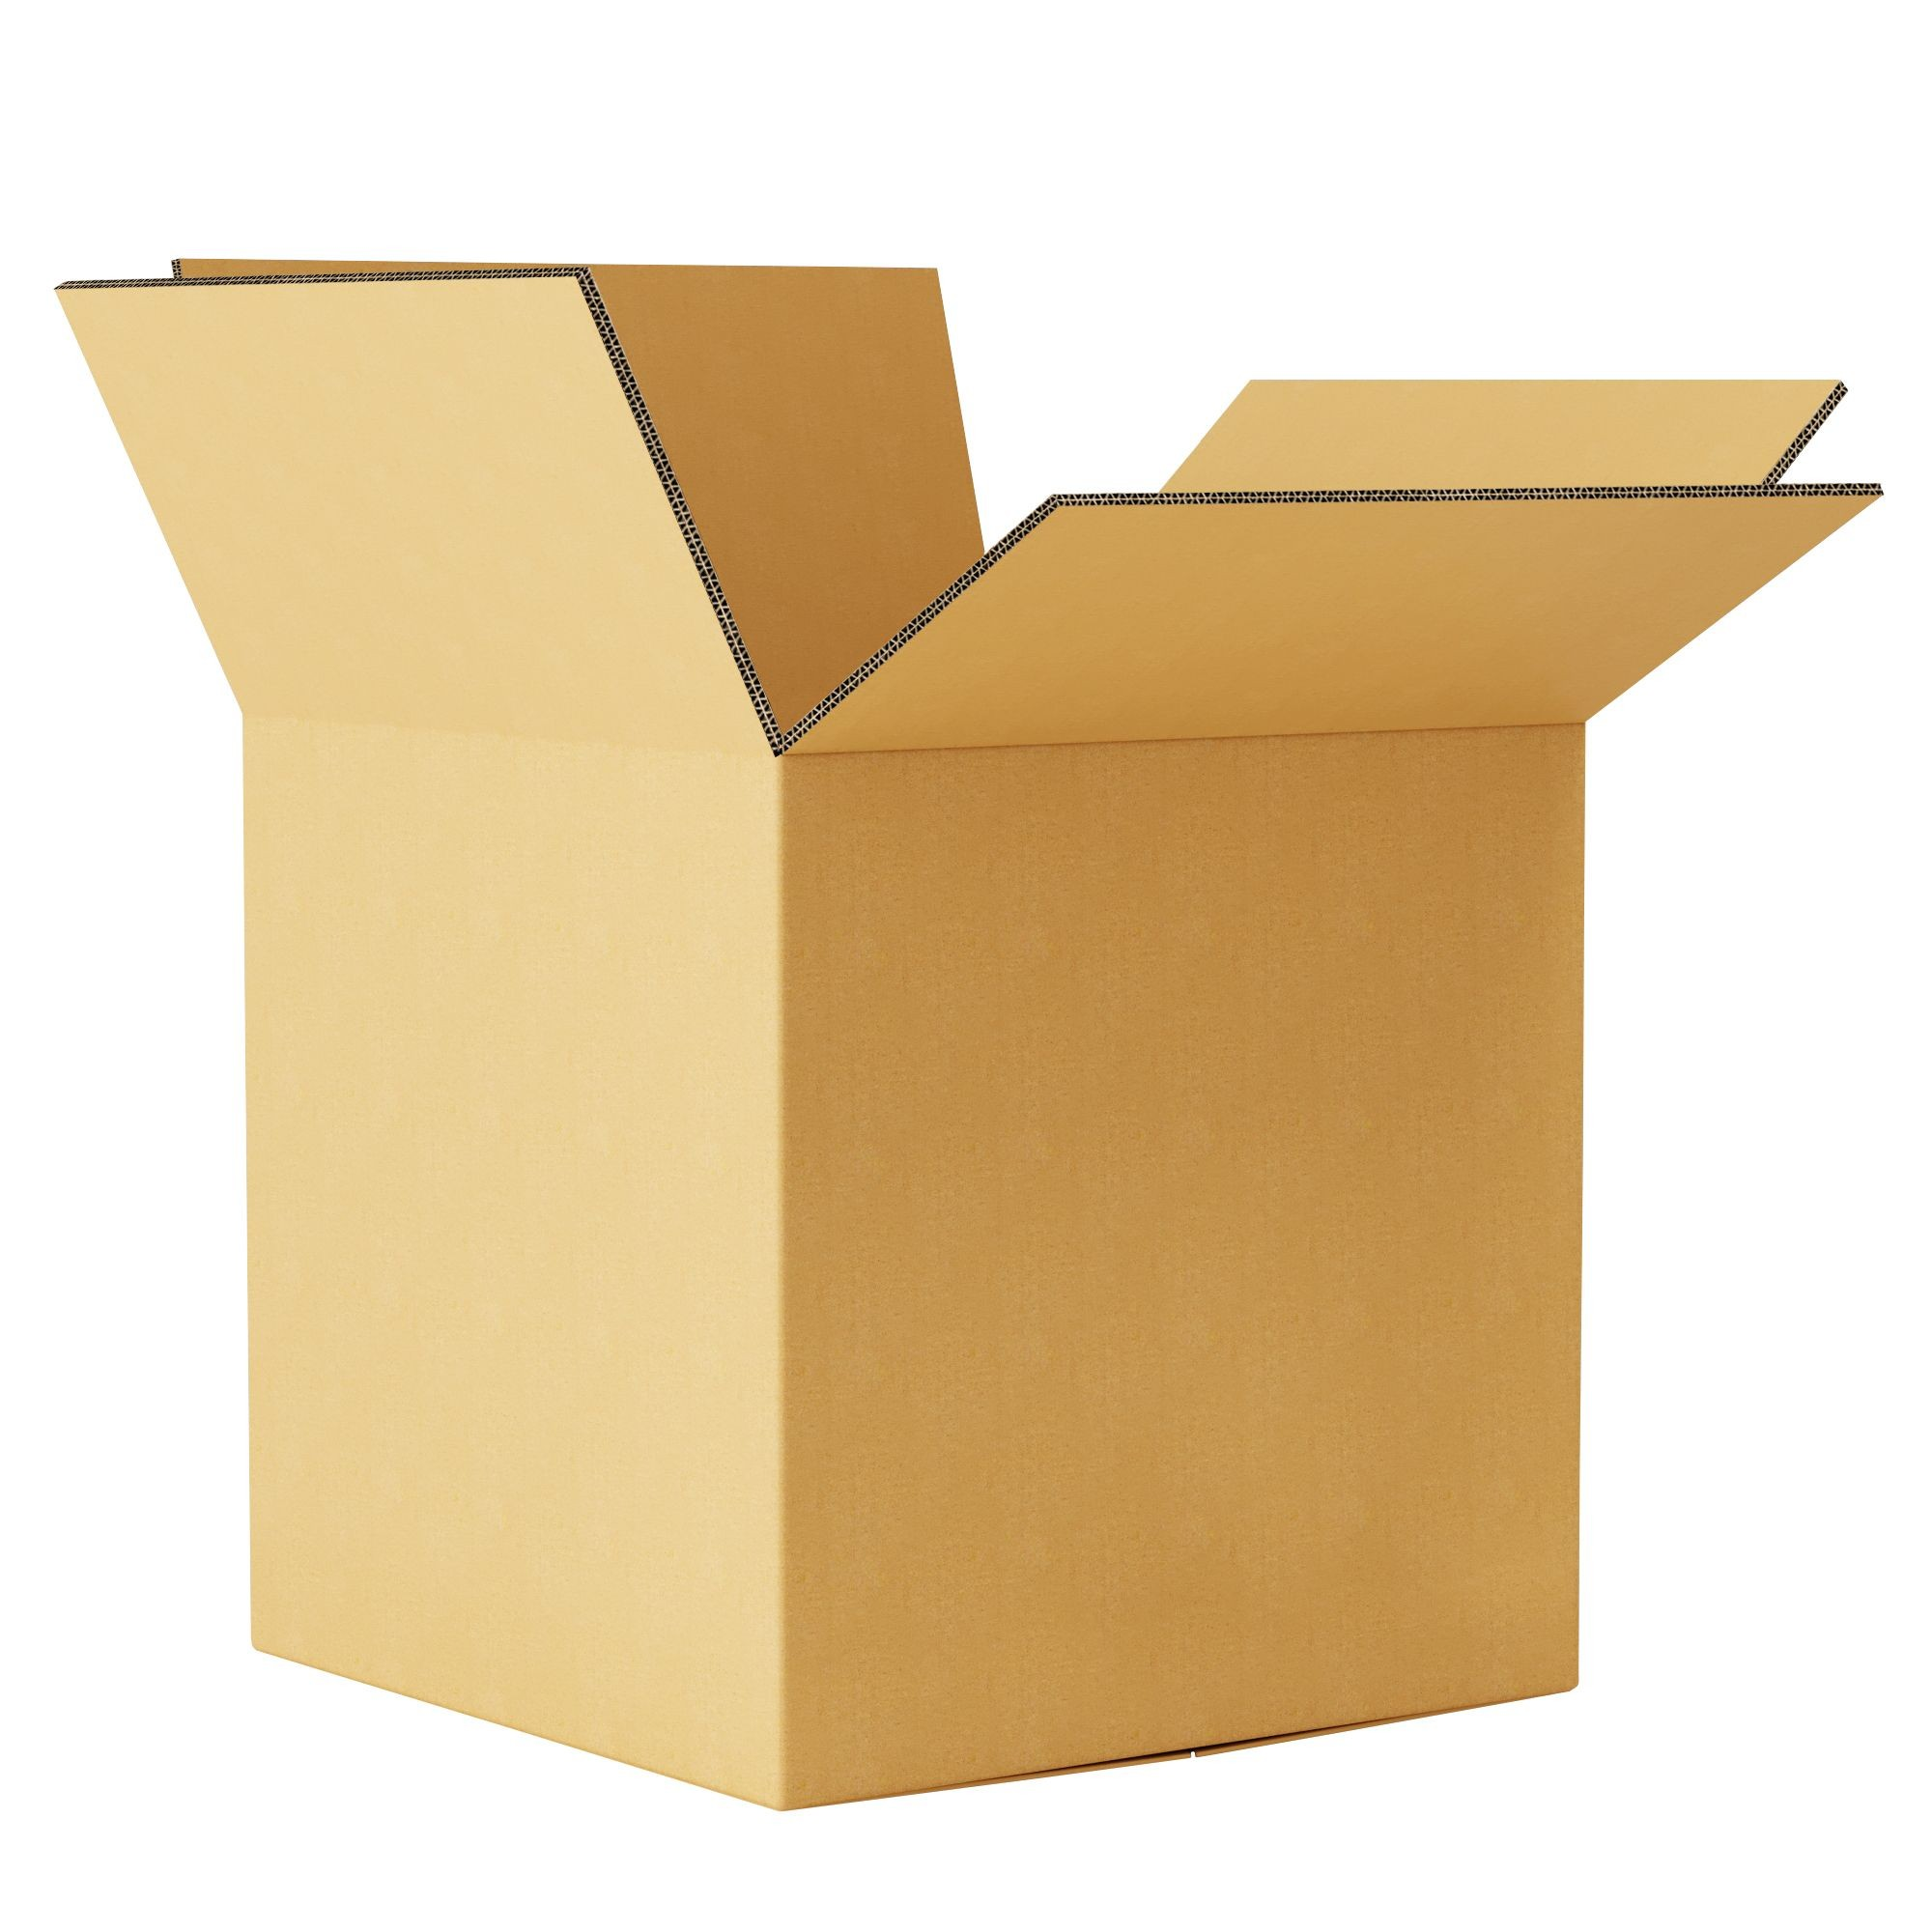 """TOTALPACK® 20 x 20 x 20"""" Double Wall Corrugated """"Printed This Side Up"""" Boxes 10 Units"""